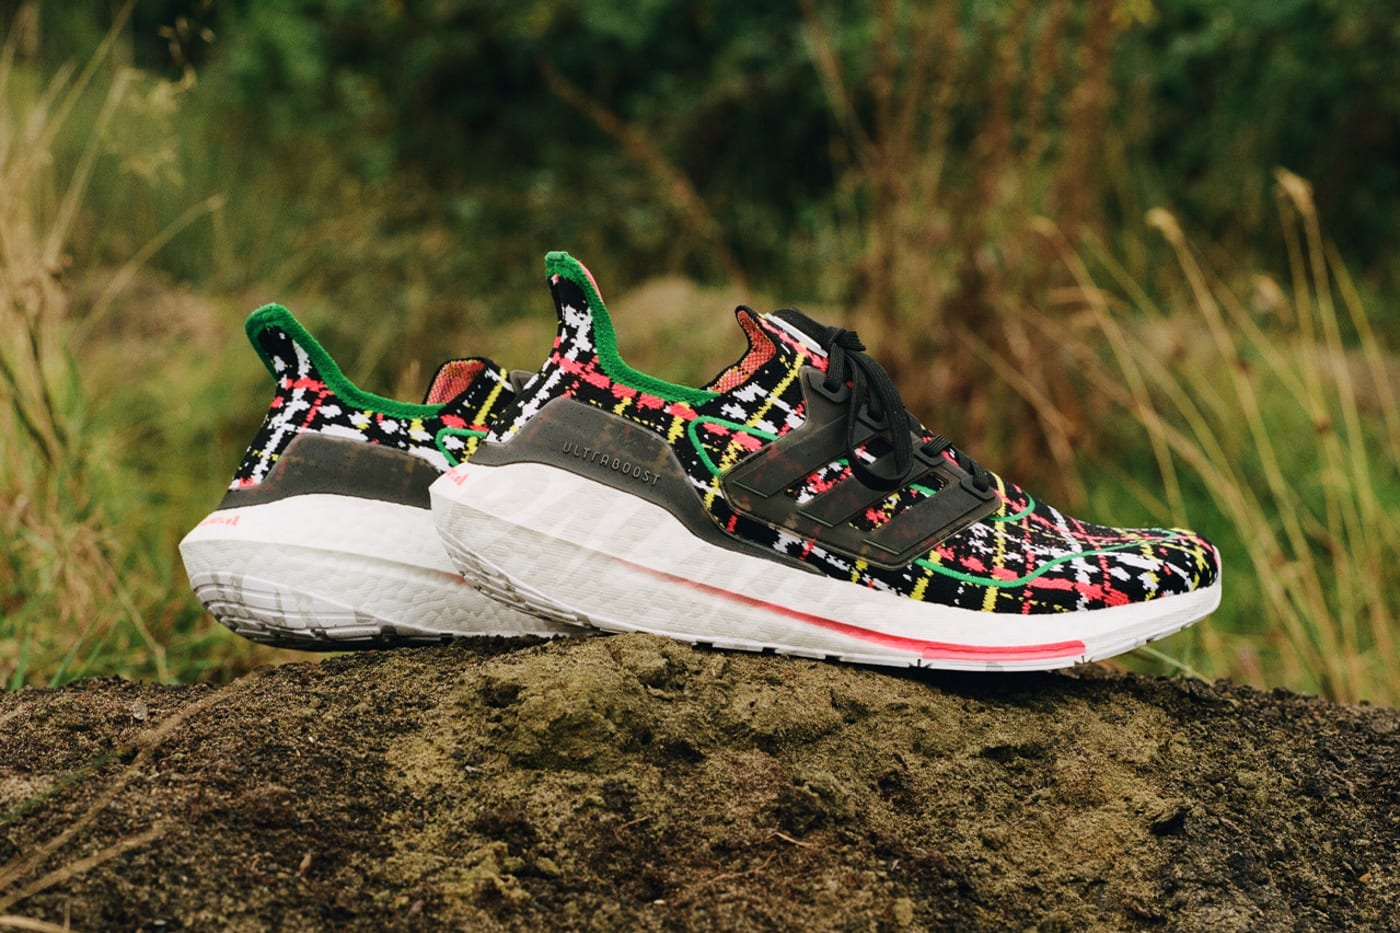 palace skateboards adidas running collection fw21